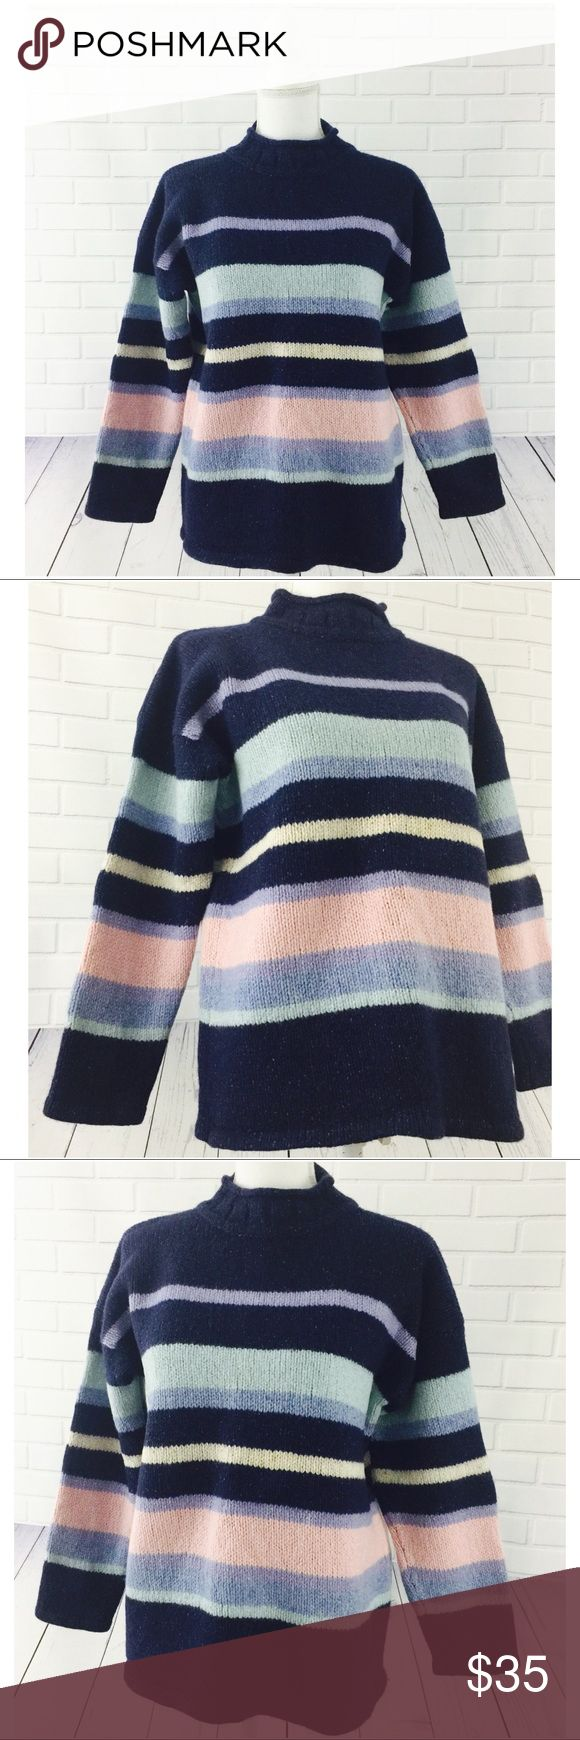 "Ireland's Eye Lambswool Silk Mock Neck Sweater 🔘Entire Closet: 30% Off 2+Items 🔘Specifically Marked Items: 6 for $25 🔘Kids Bundle Special: 5 for $18  ▫️Brand: Ireland's Eye ▫️Size: M ▫️Color: Multicolored ▫️Material: Lambswool, Silk ▫️Condition: Preowned  ▫️Flaws: None  ▫️Description:  •Mock neck •Long sleeves •Multicolored pastel stripes  ▫️Measurements Laying Flat: •Chest: 21"" •Length: 25"" •Shipping Weight: 2lbs  ▪️NO Trade/Hold ▪️Next Day Shipping ▪️Smoke Free/Kitty Friendly Home…"